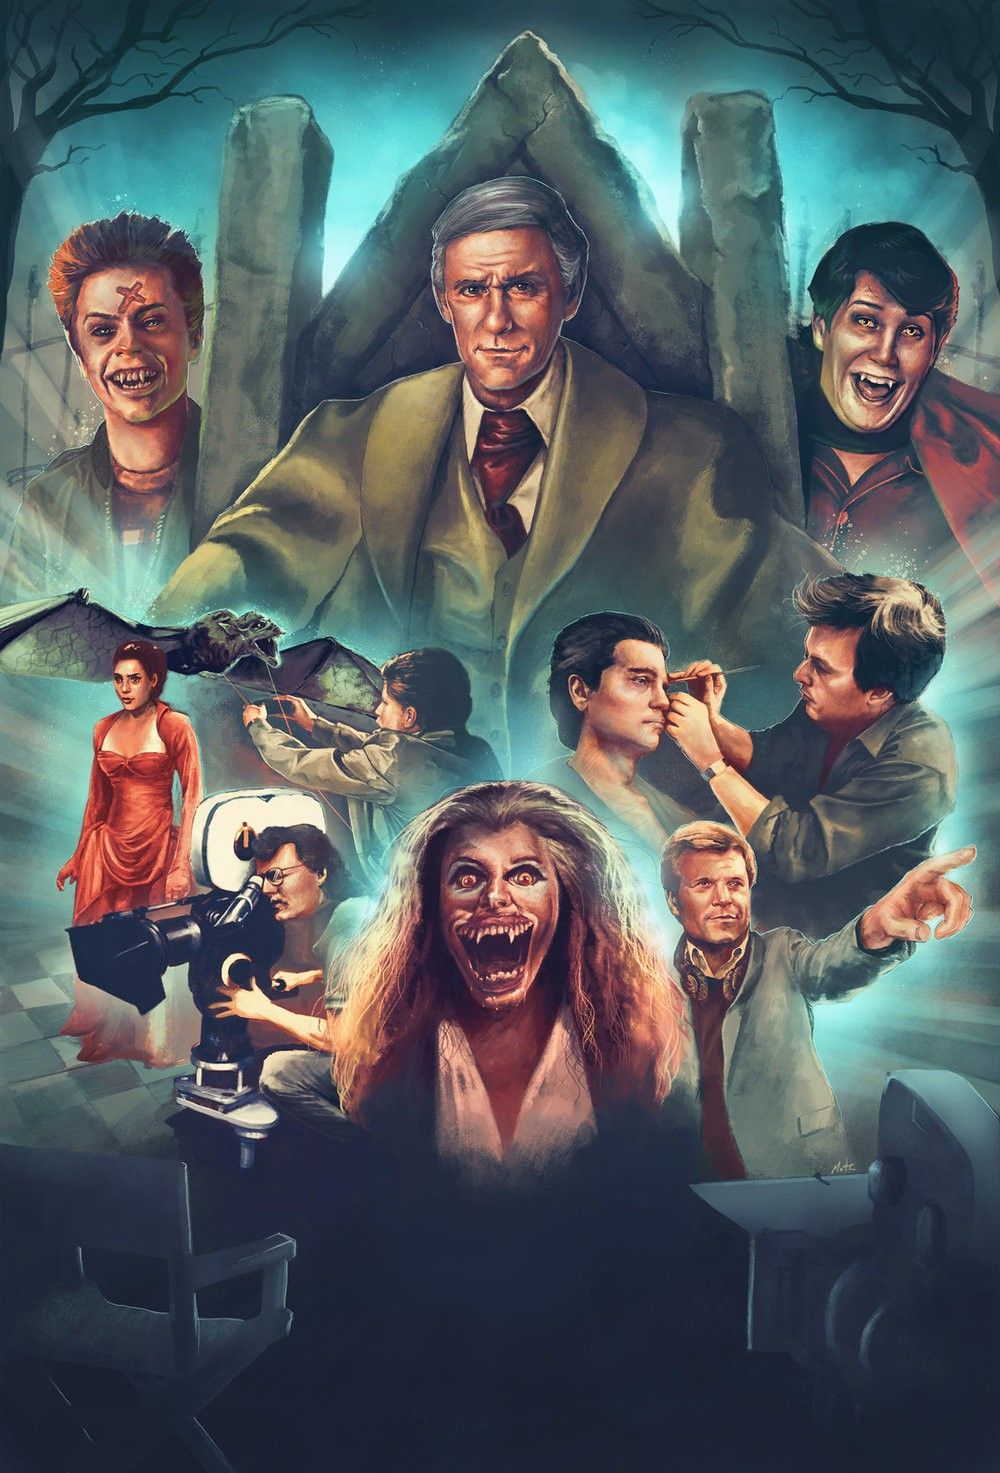 Pin By Dustyofthedead On Horror Movie Art Posters In 2020